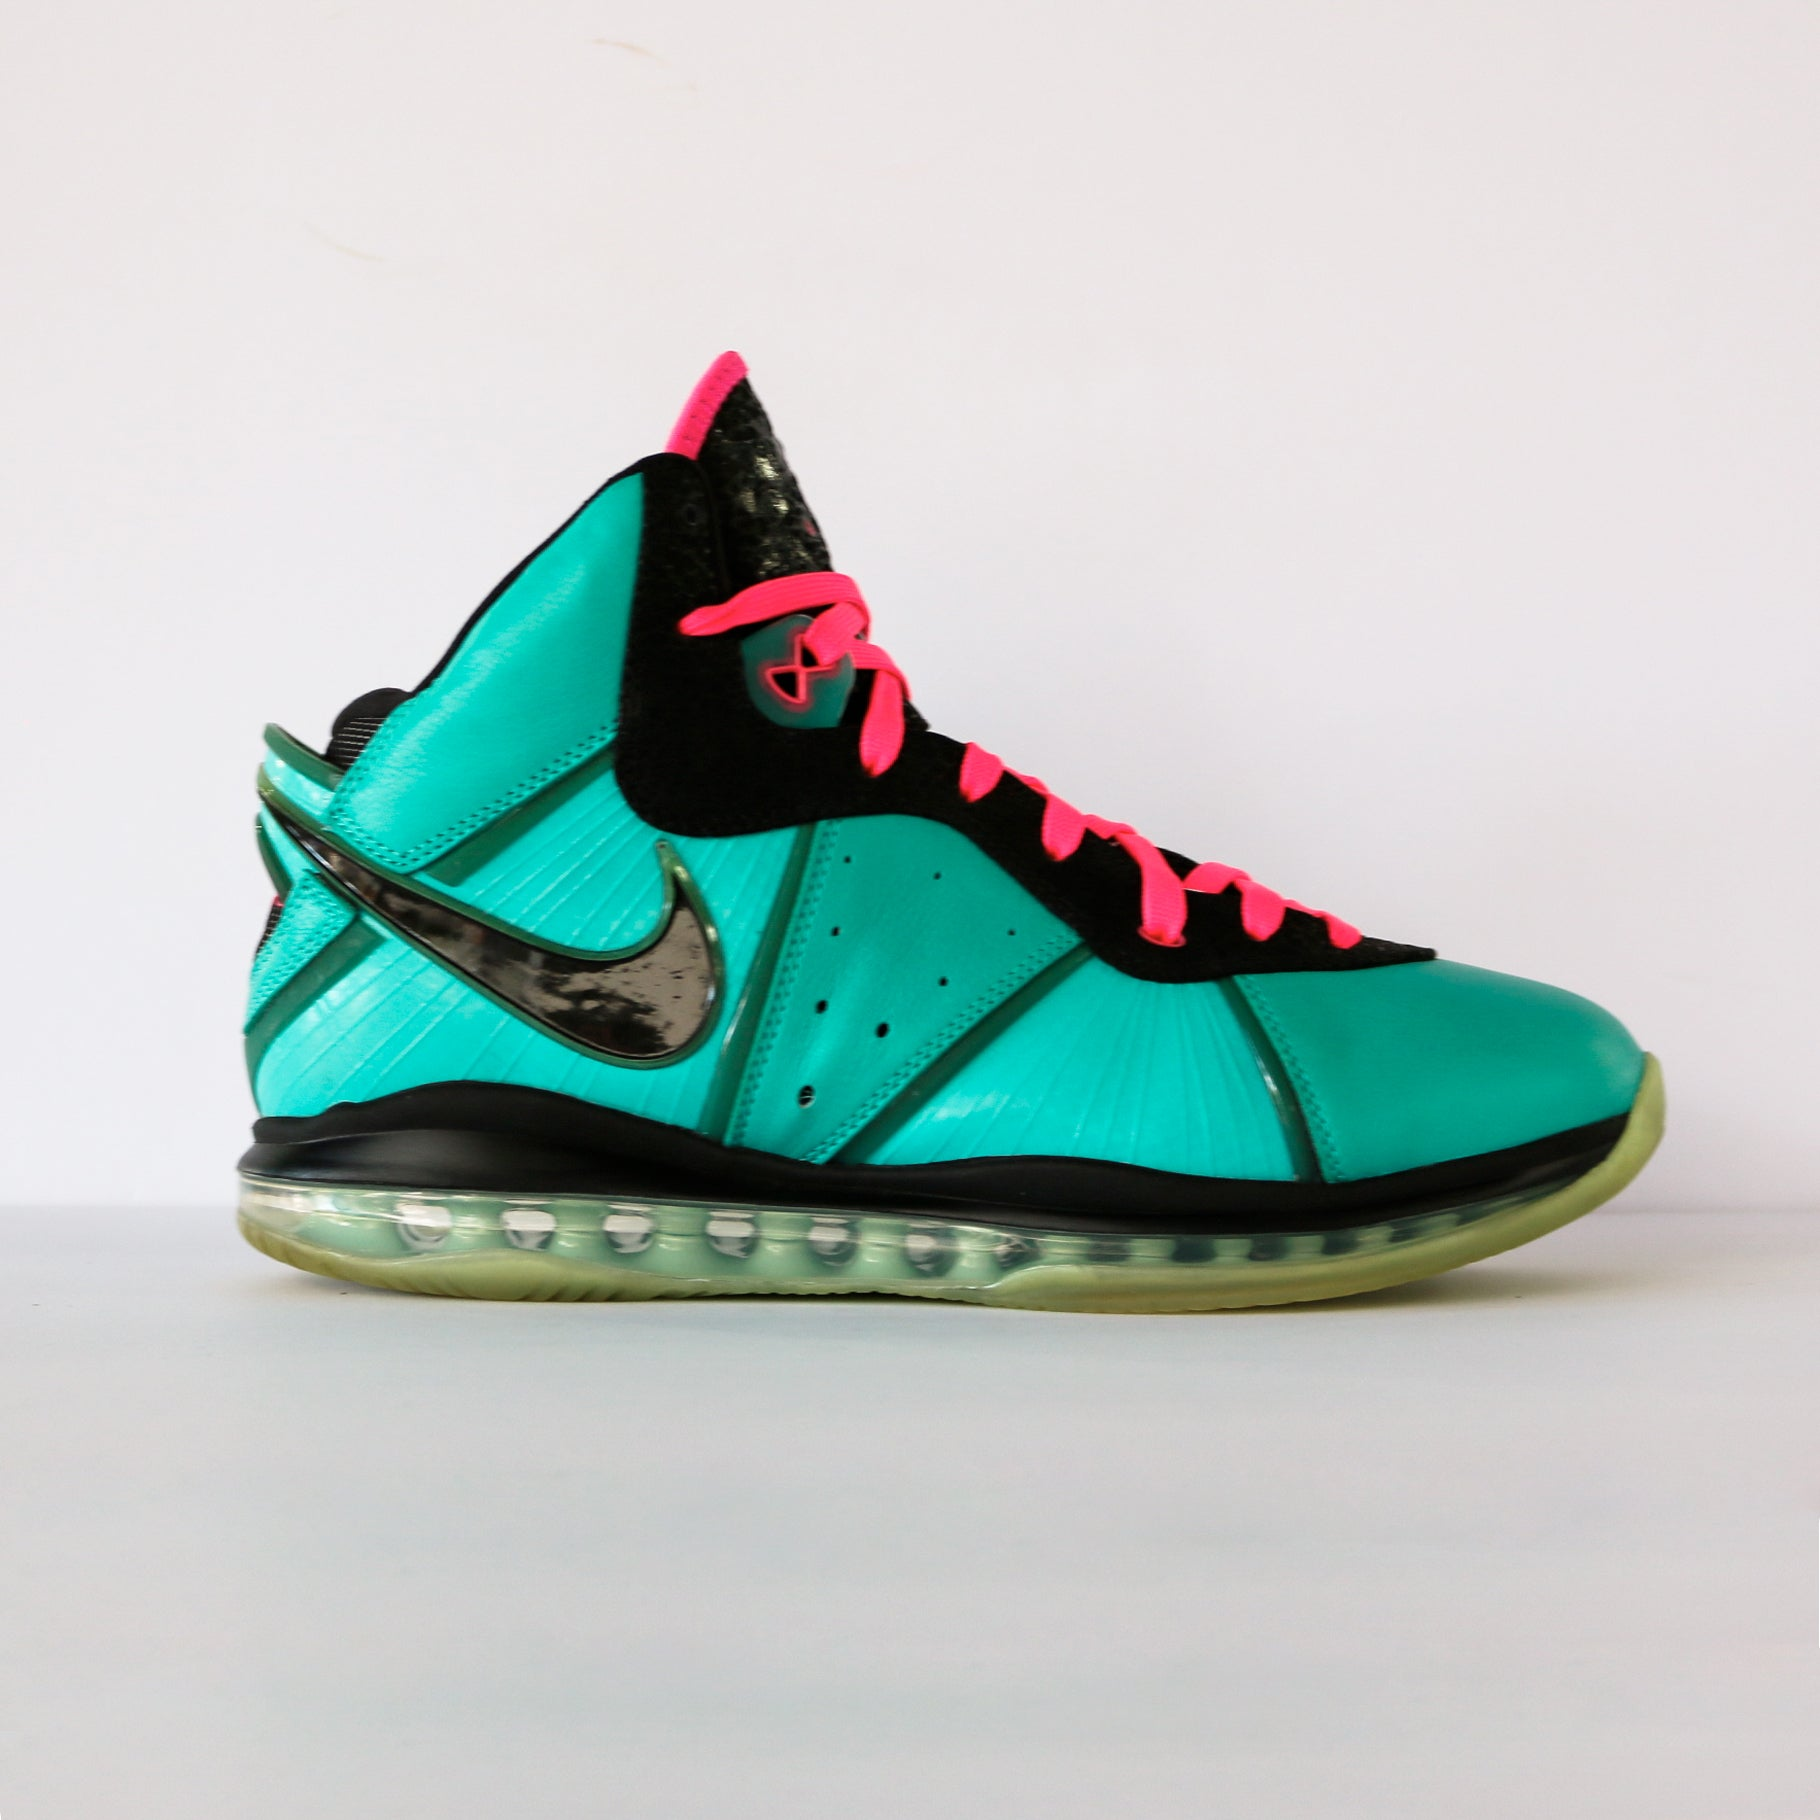 cccc70c1edf LeBron 8  South Beach  (Pre-Heat) – Butter